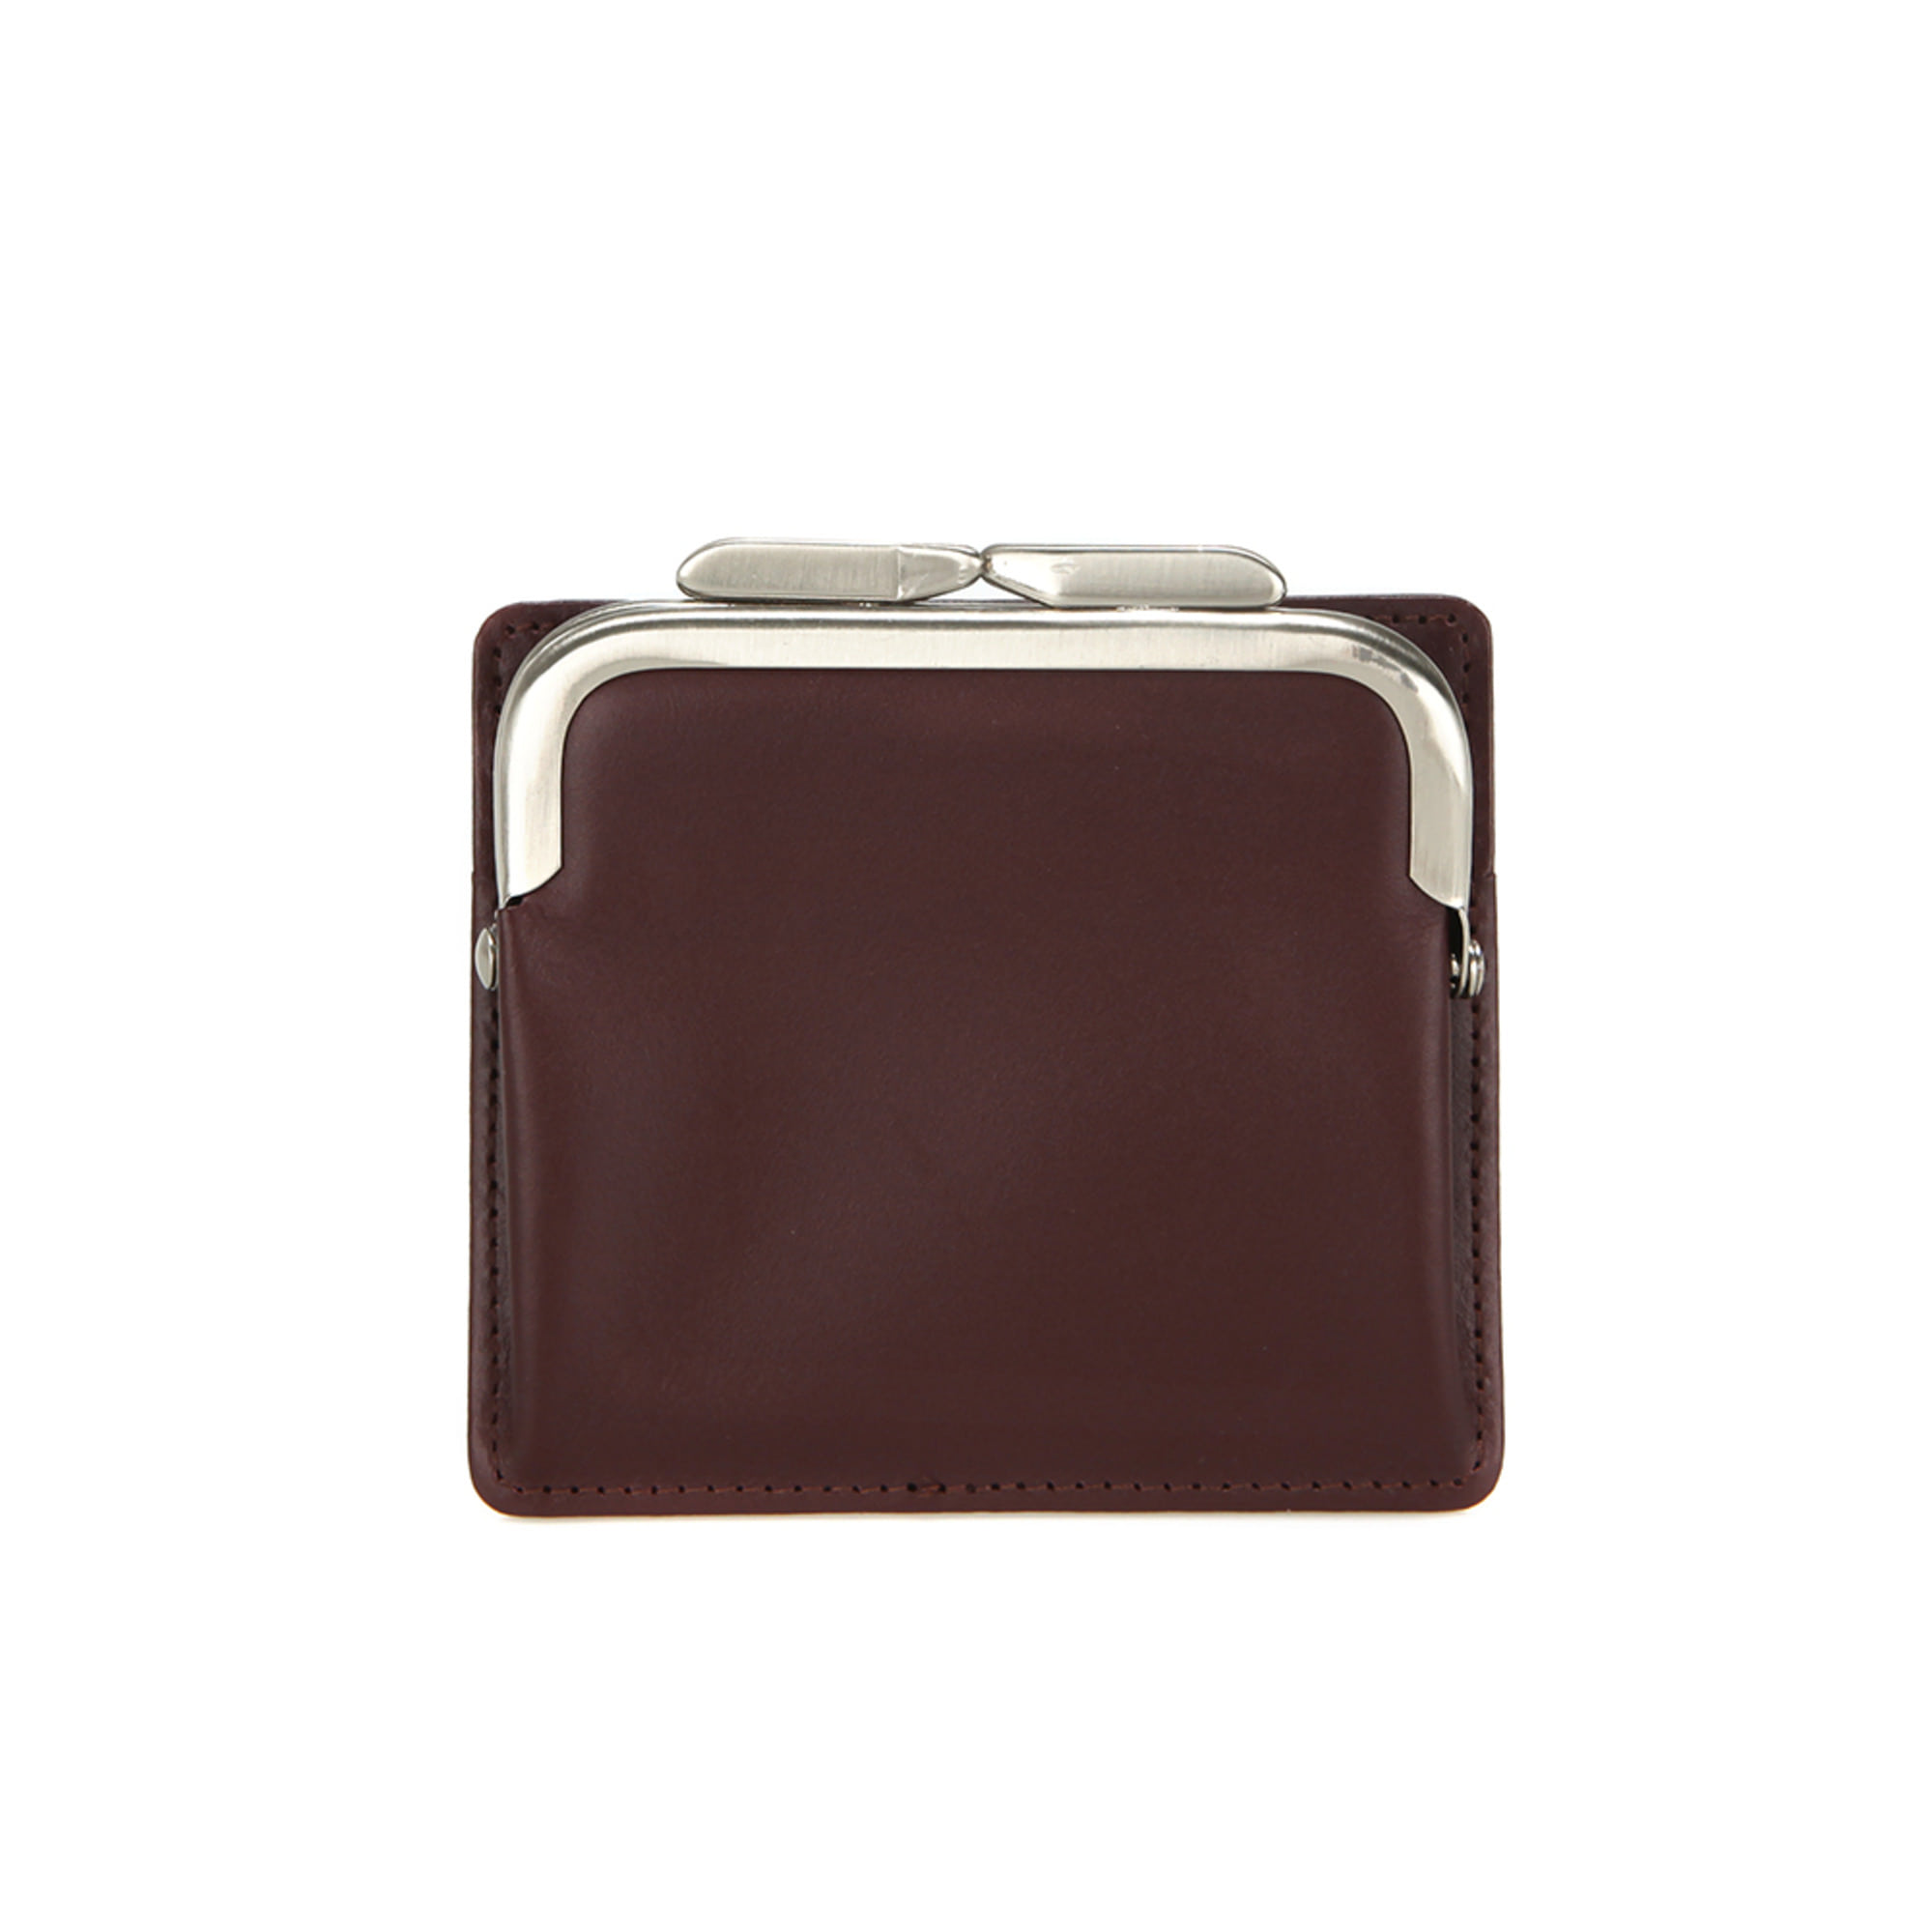 [DISCONTINUE] FRAME CARD WALLET - WINE